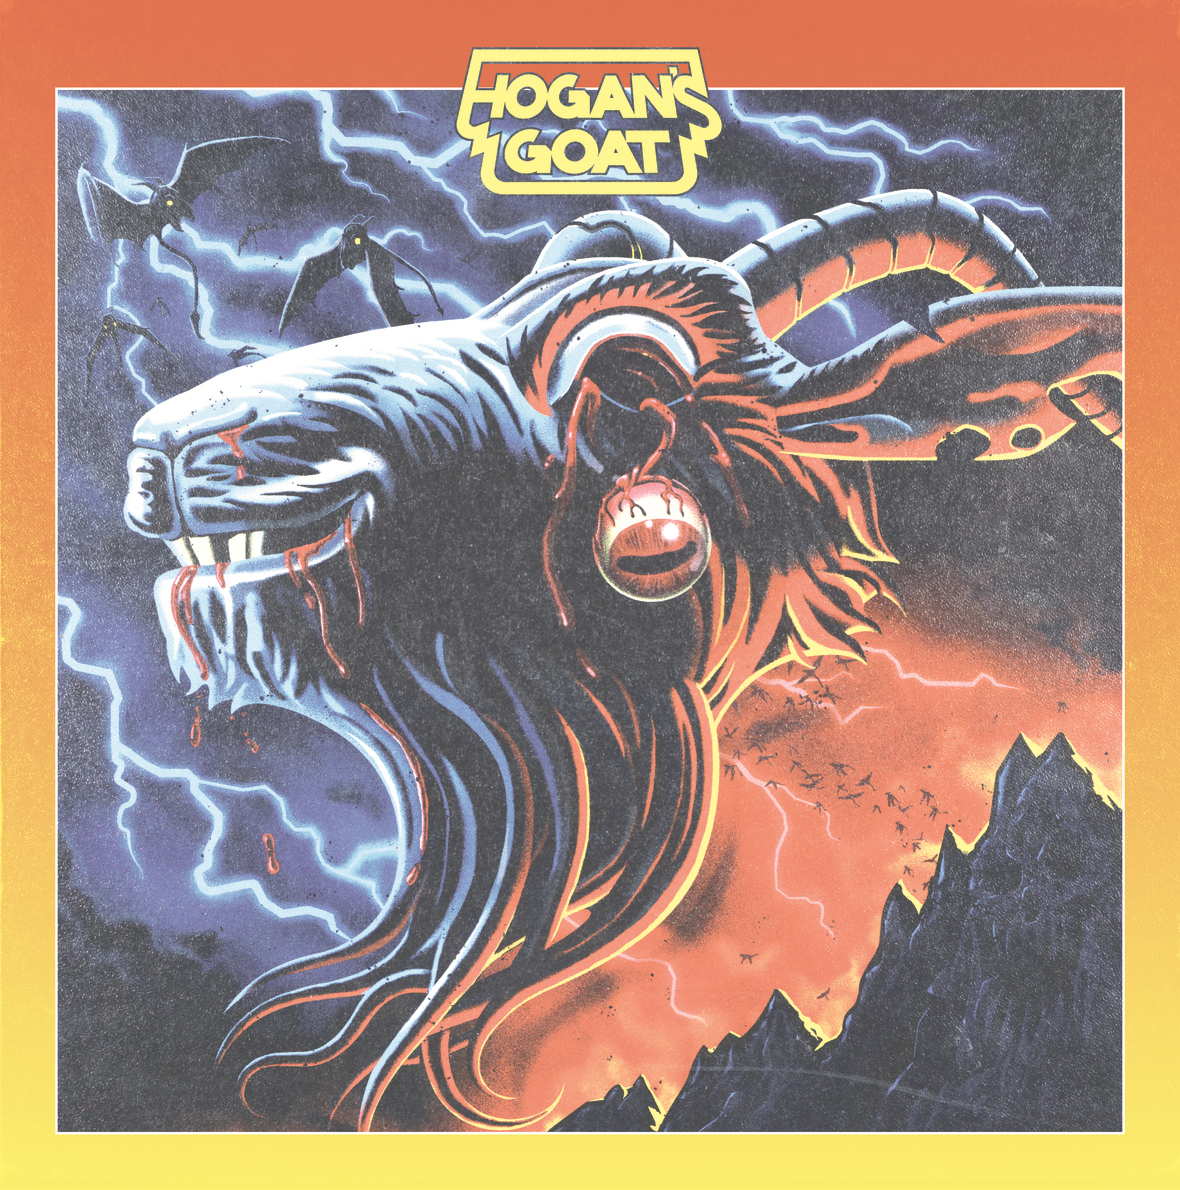 Hogan's Goat - Hogan's Goat - Album Cover